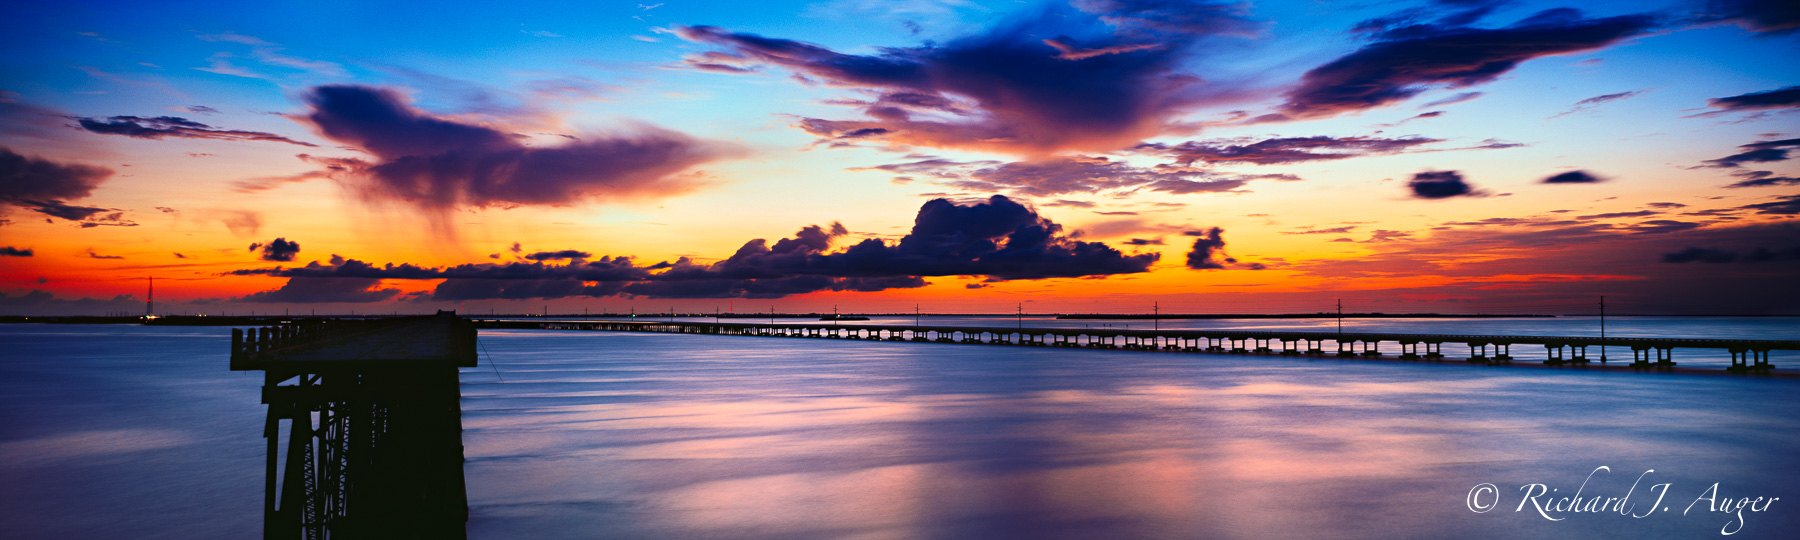 Bahia Honda Florida, Historic, Bridge, Sunset, Water, Panorama, Red, Sky, Blues, Photographer, Photo